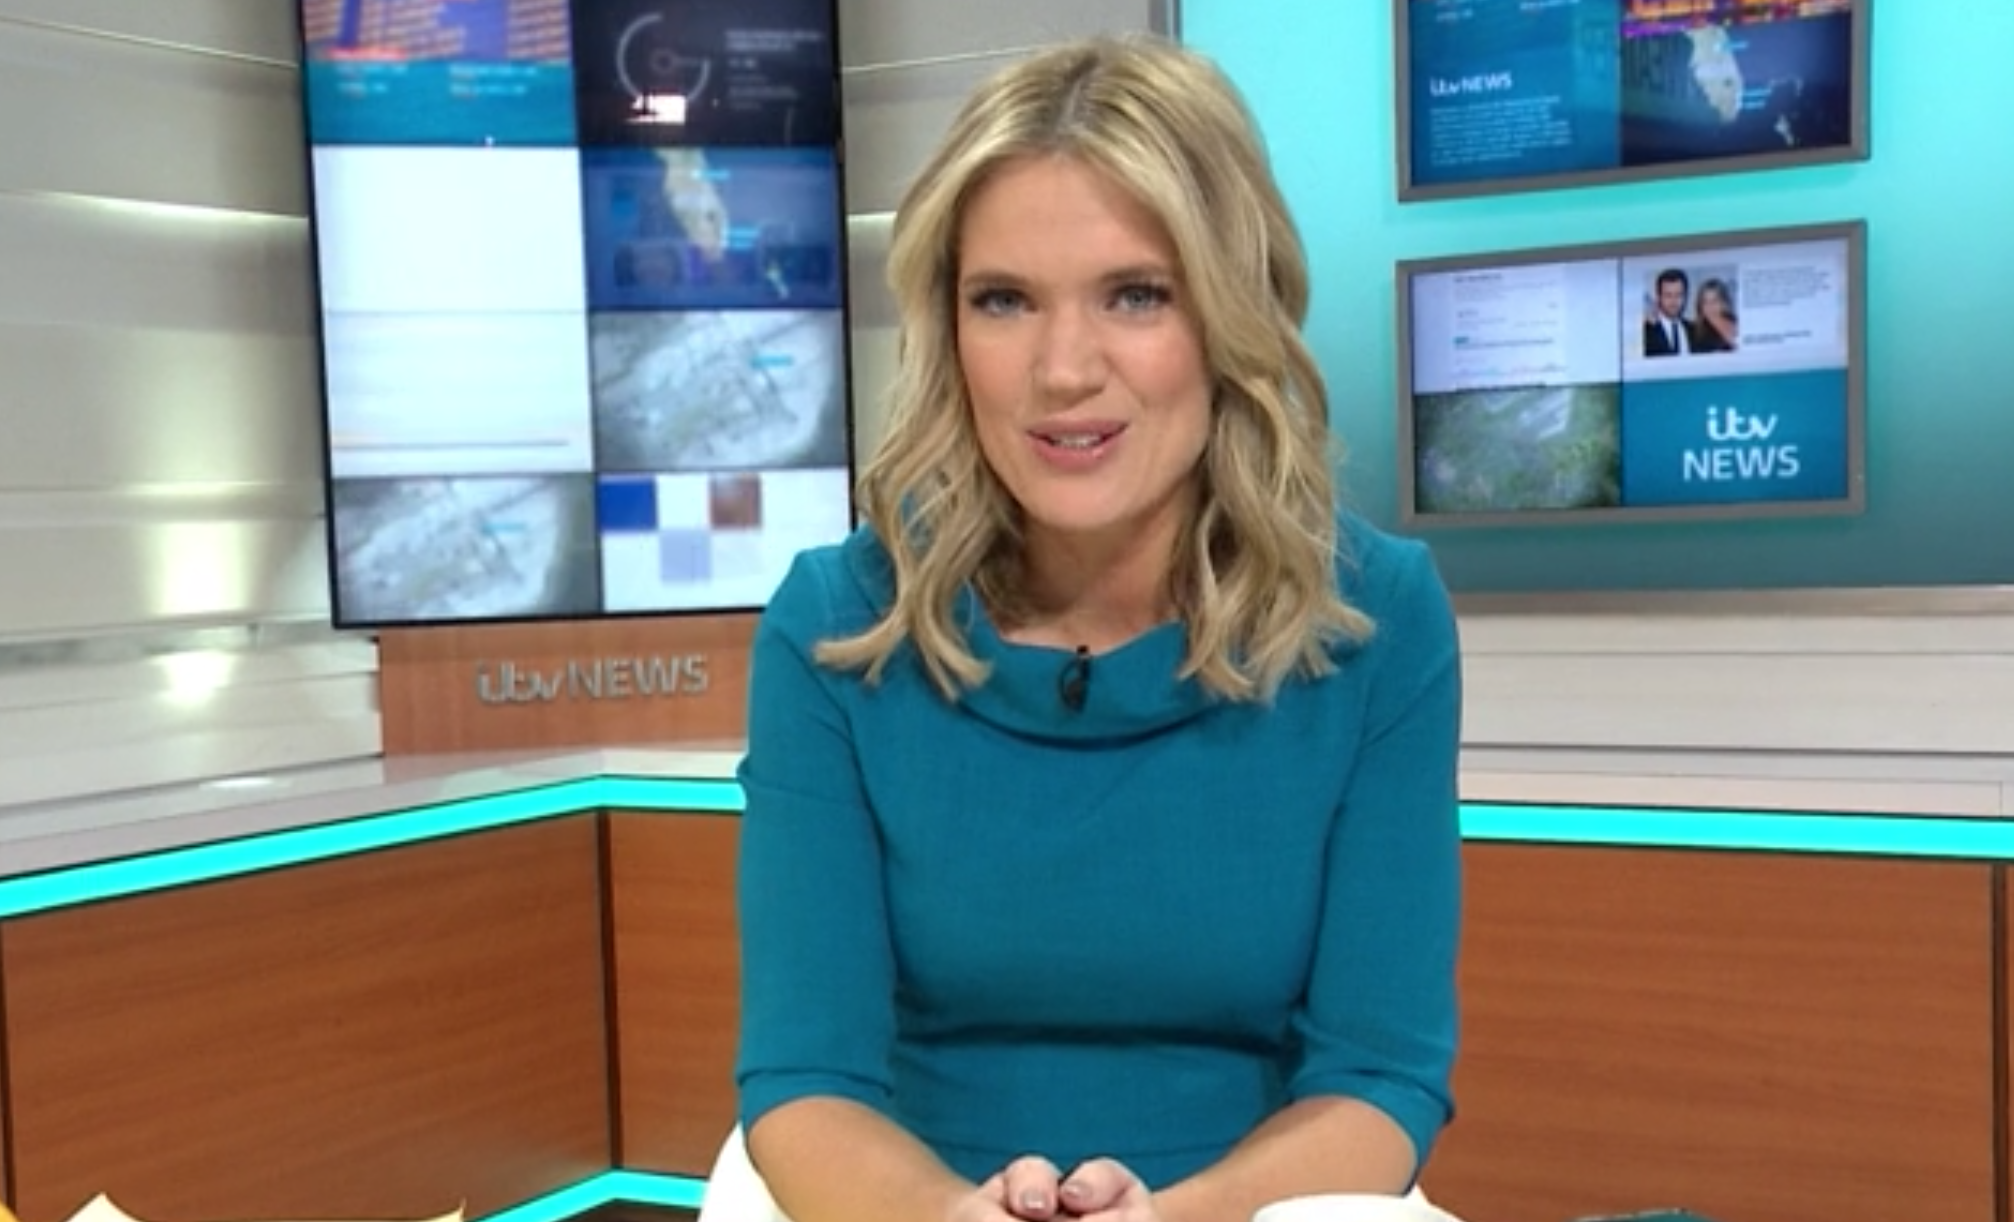 GMB viewers amazed by Charlotte Hawkins throwback snaps as newsreader celebrates 20 years in TV